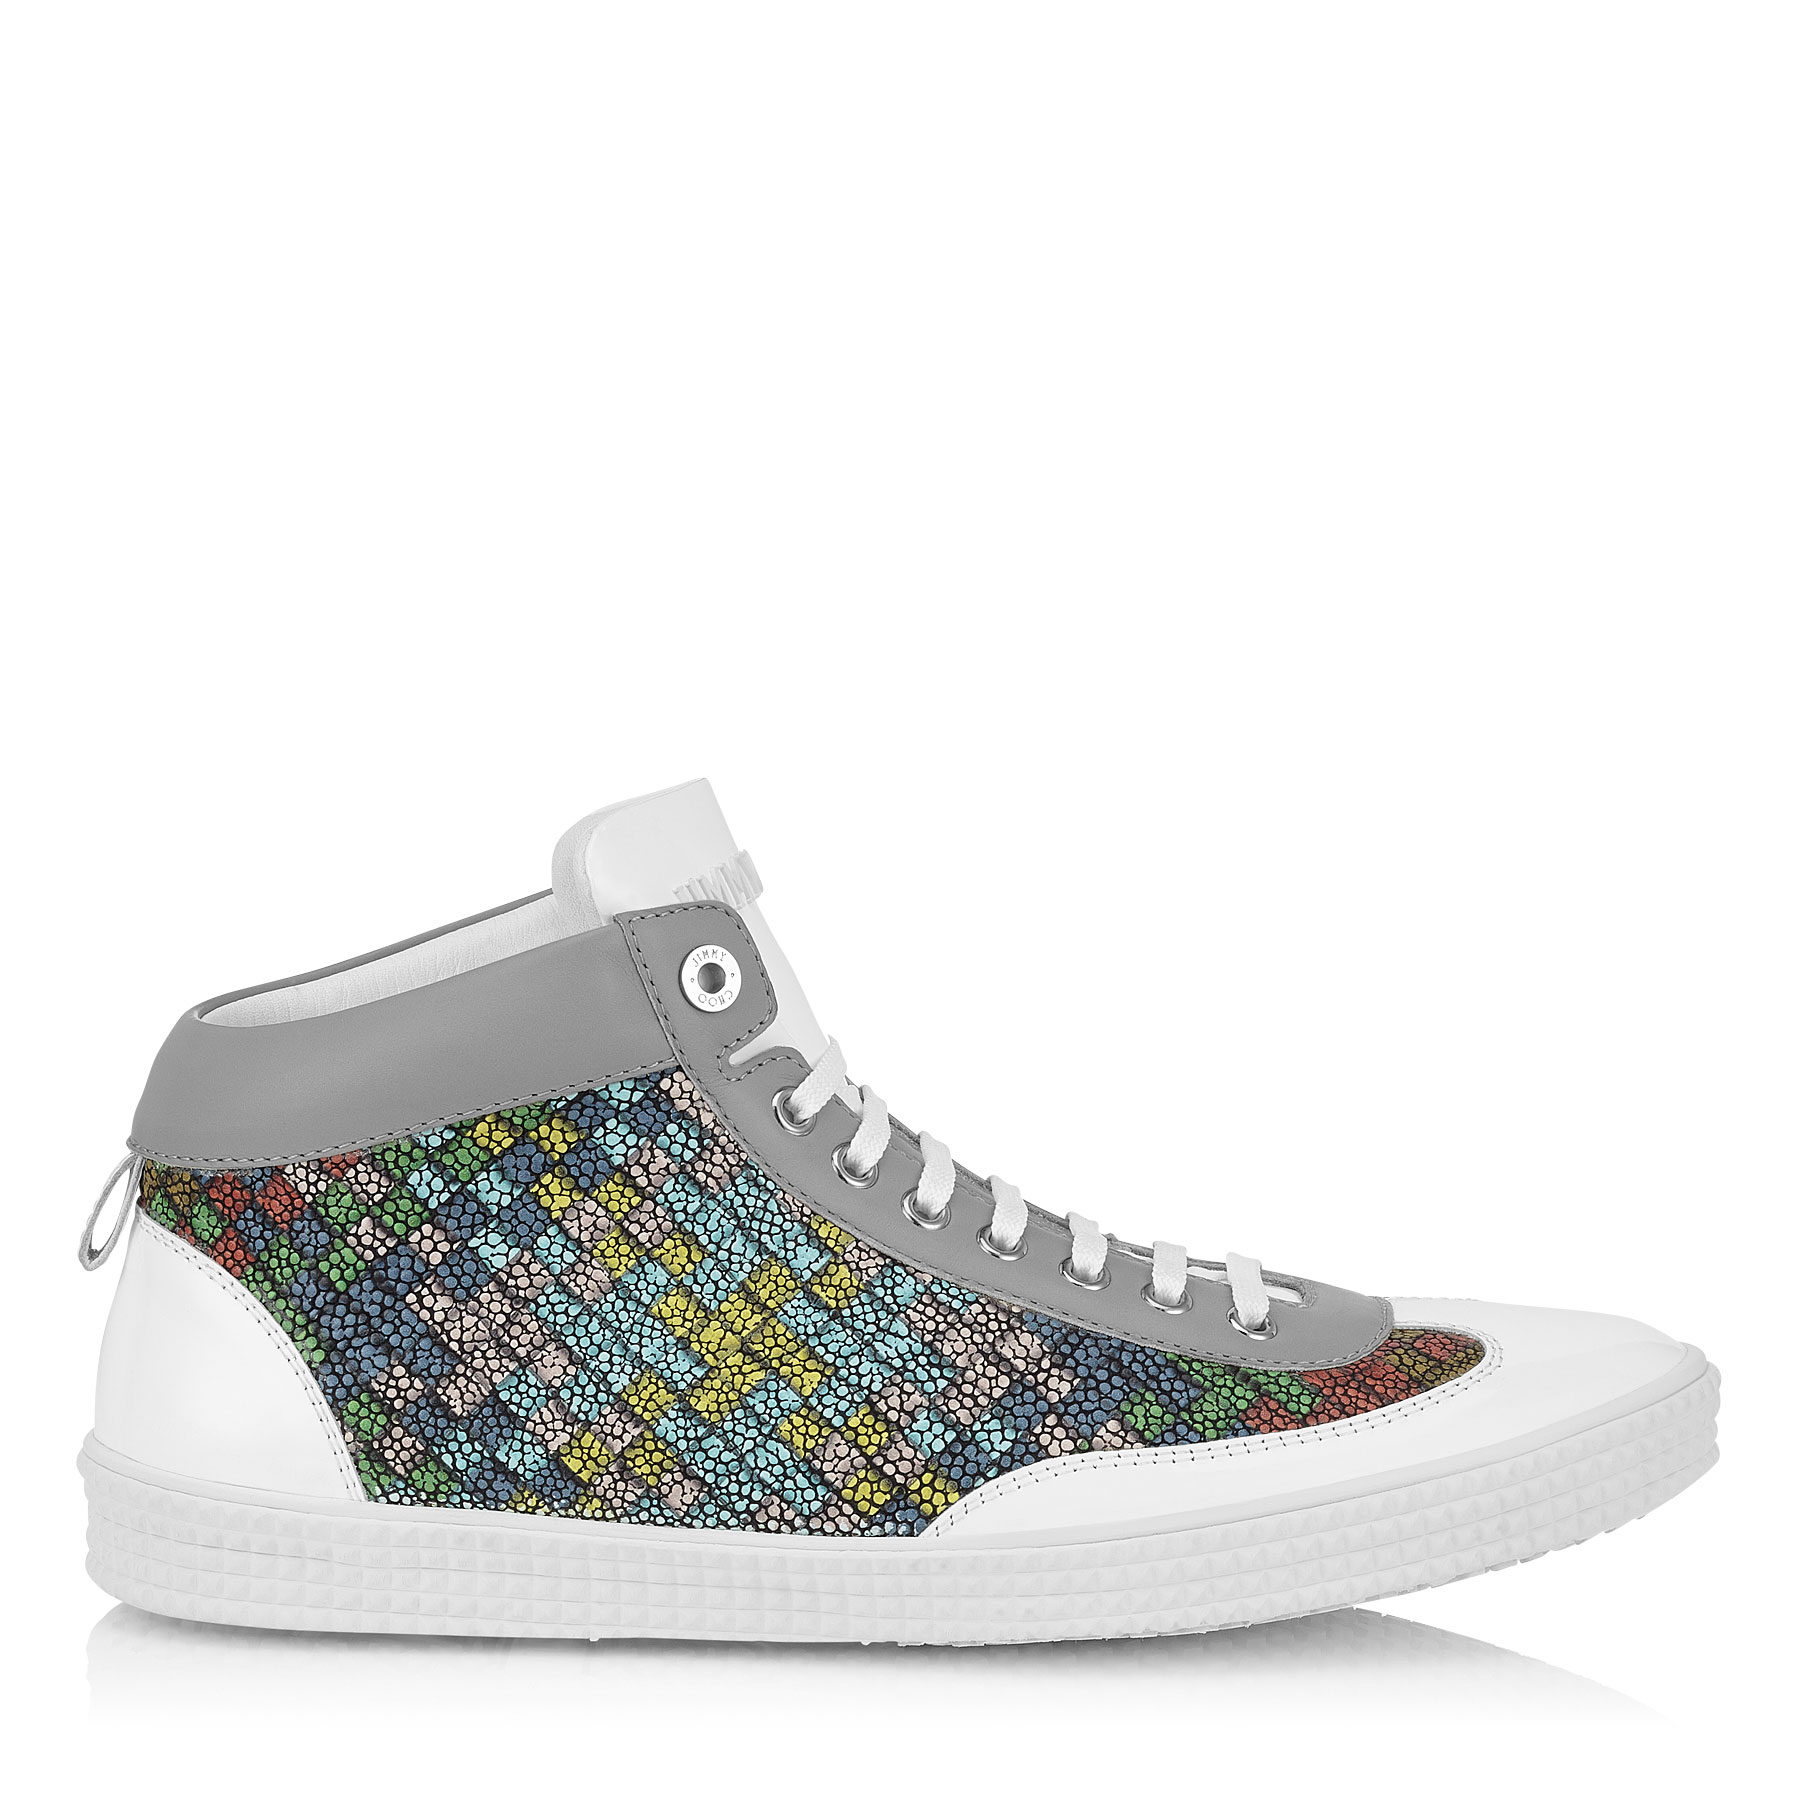 VARLEY Blue and Pop Green Mix Mosaic Leather High Top Trainers